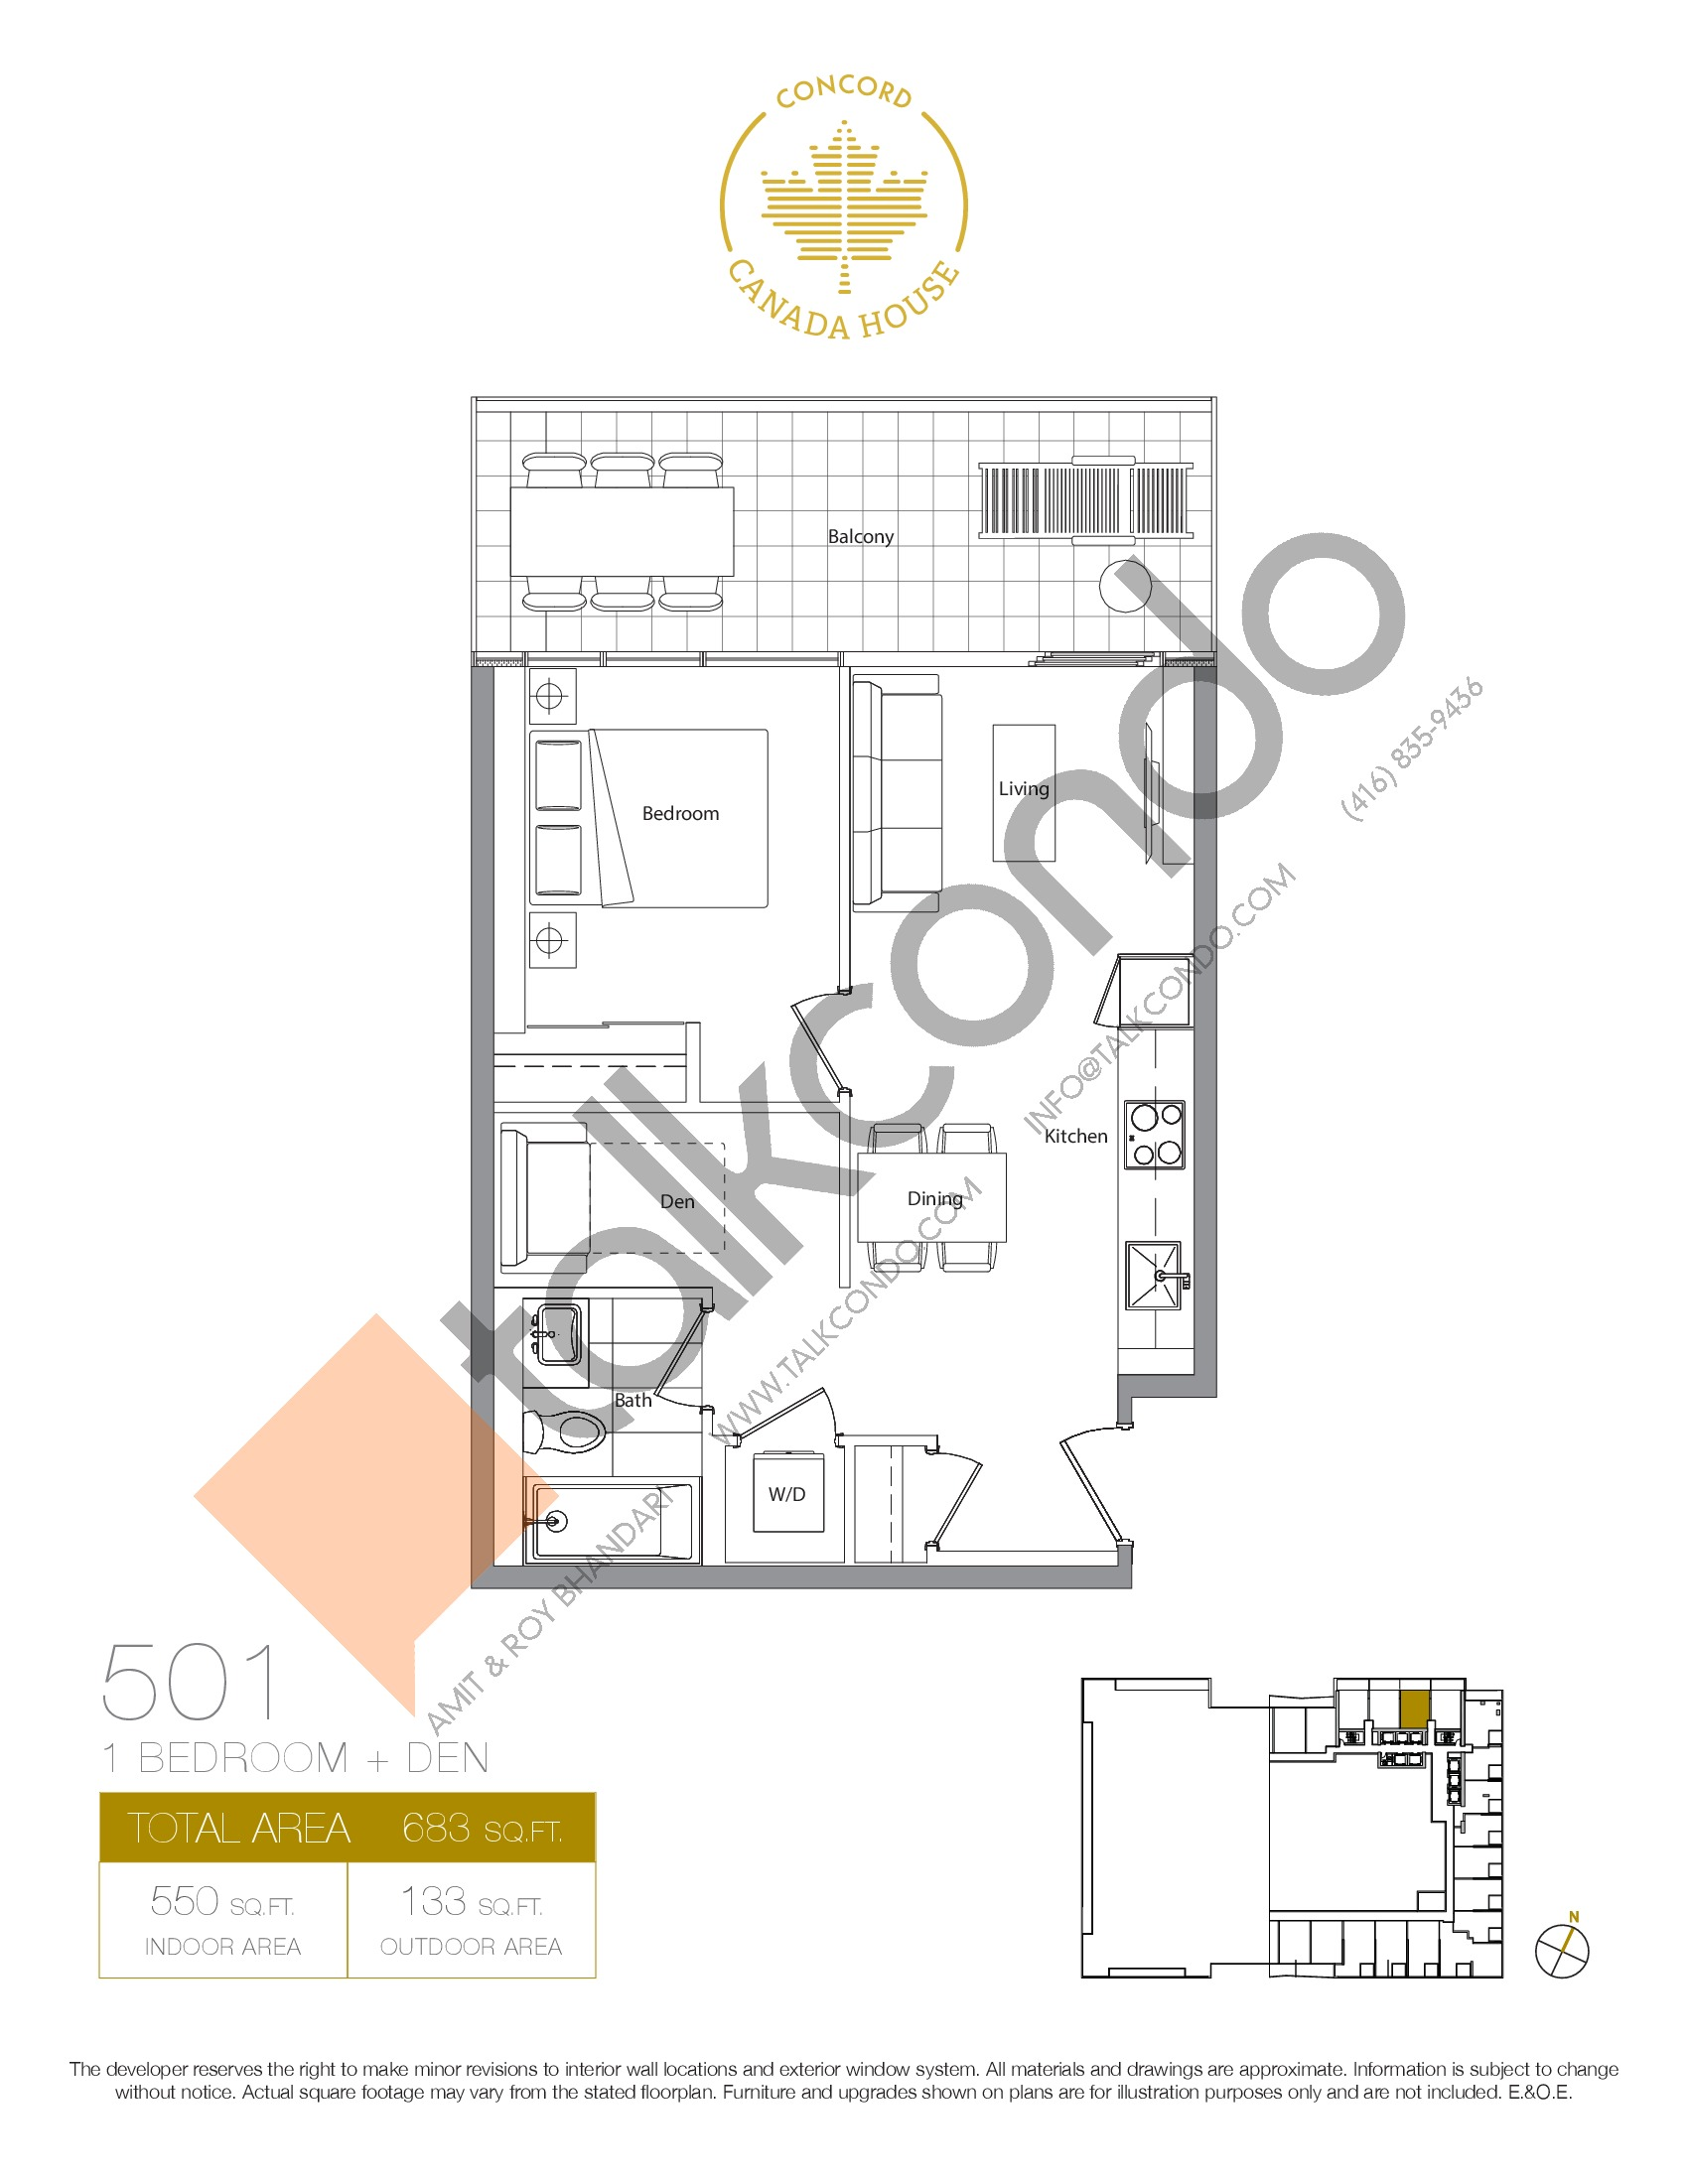 501 - West Tower Floor Plan at Concord Canada House Condos - 550 sq.ft